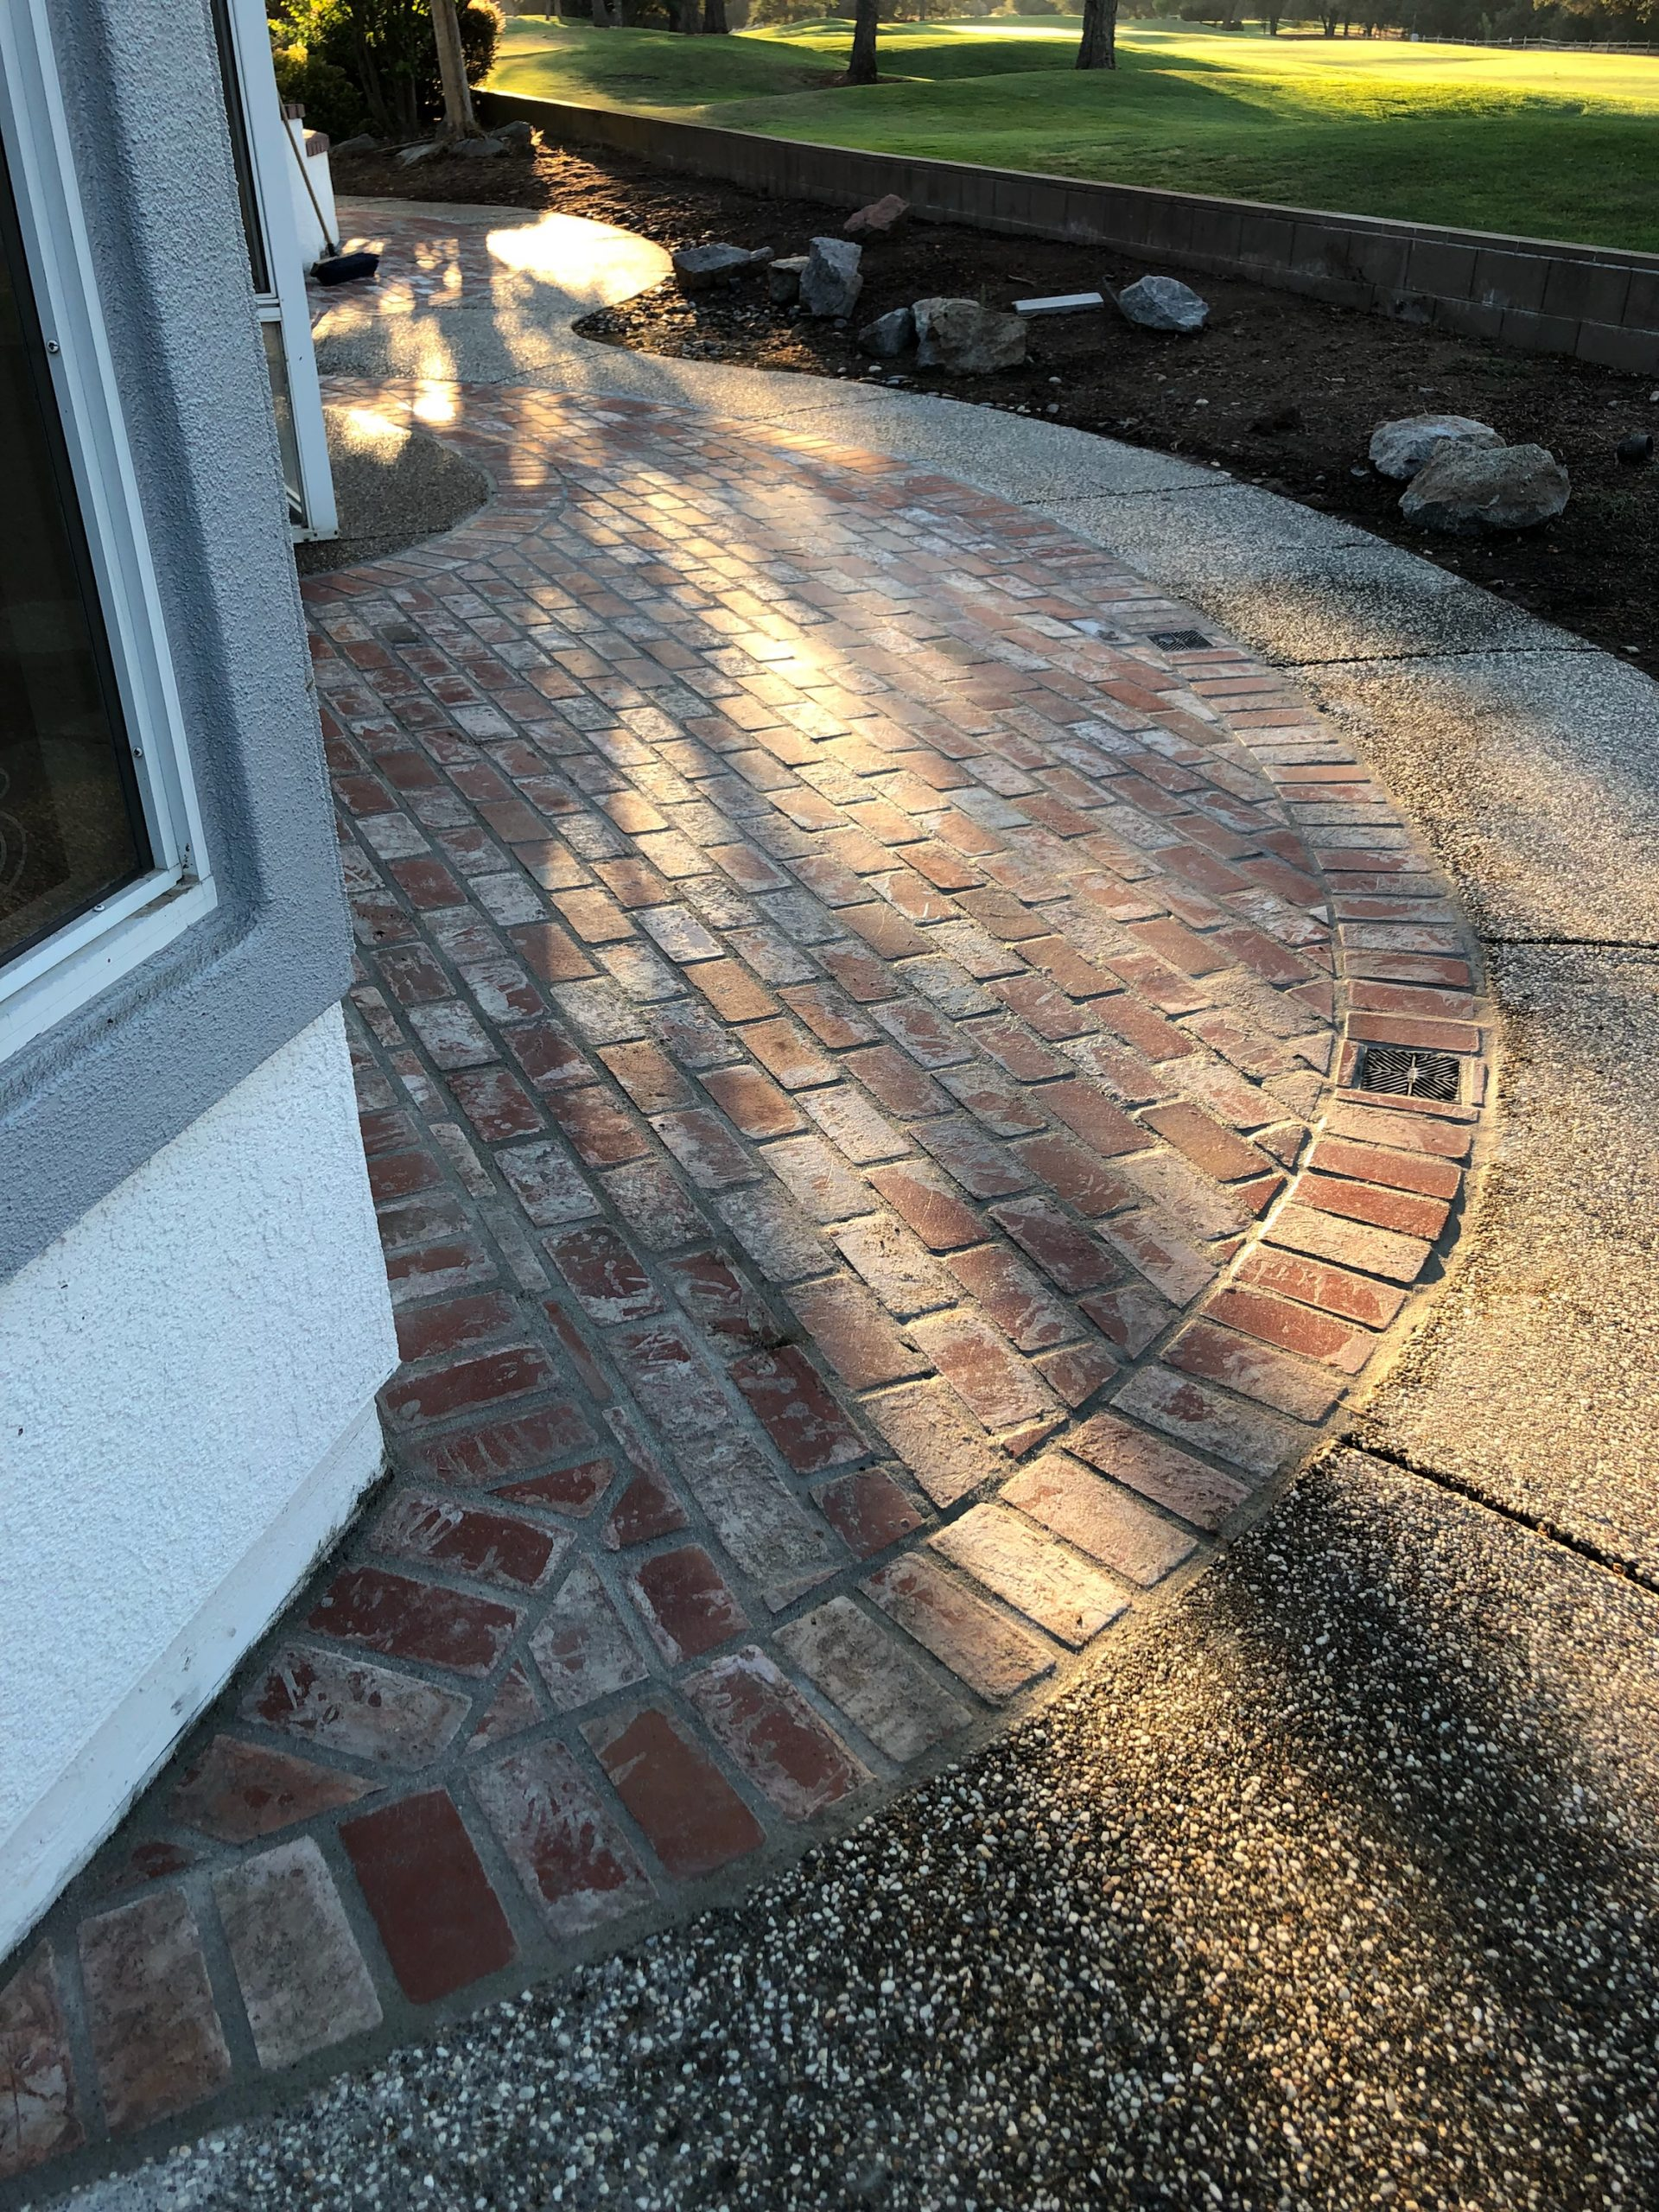 An image of finished concrete work in Walnut Creek, CA.